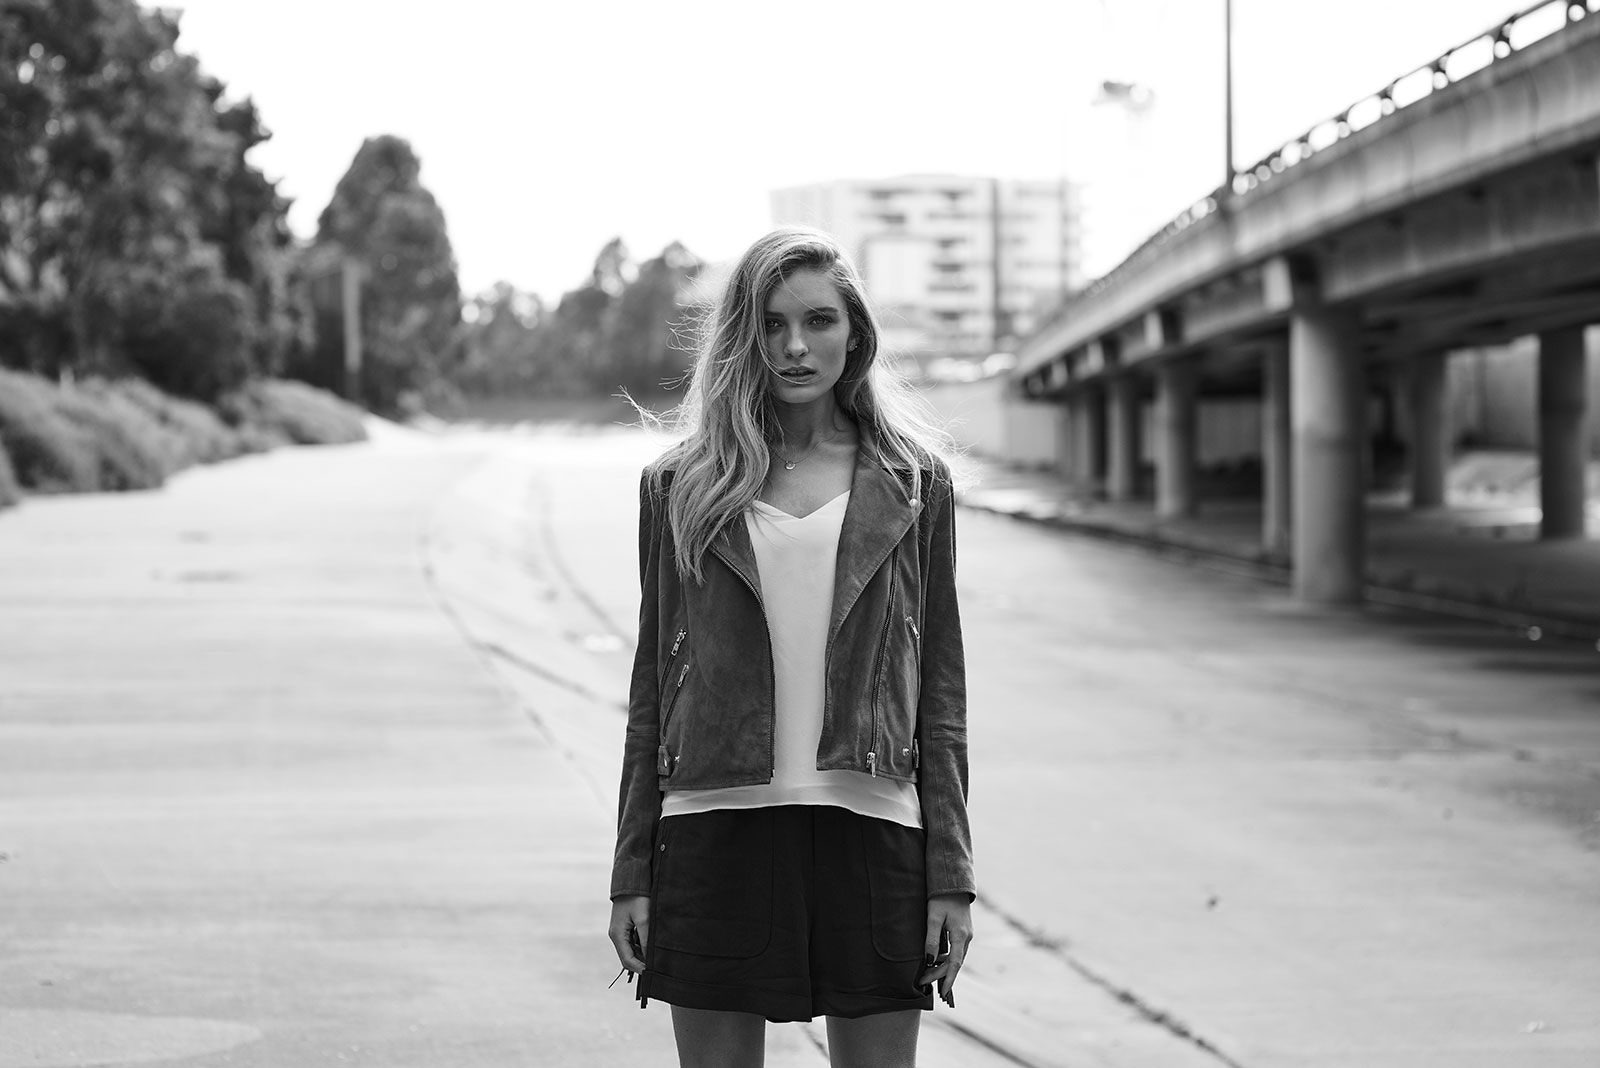 Q&A with #ChantellePrice for our #StyleDiaries - #models #modelling #photography  #davidhiggs #fallenbrokenstreet #danaethelabel  #melbourne #spring #summer #girls